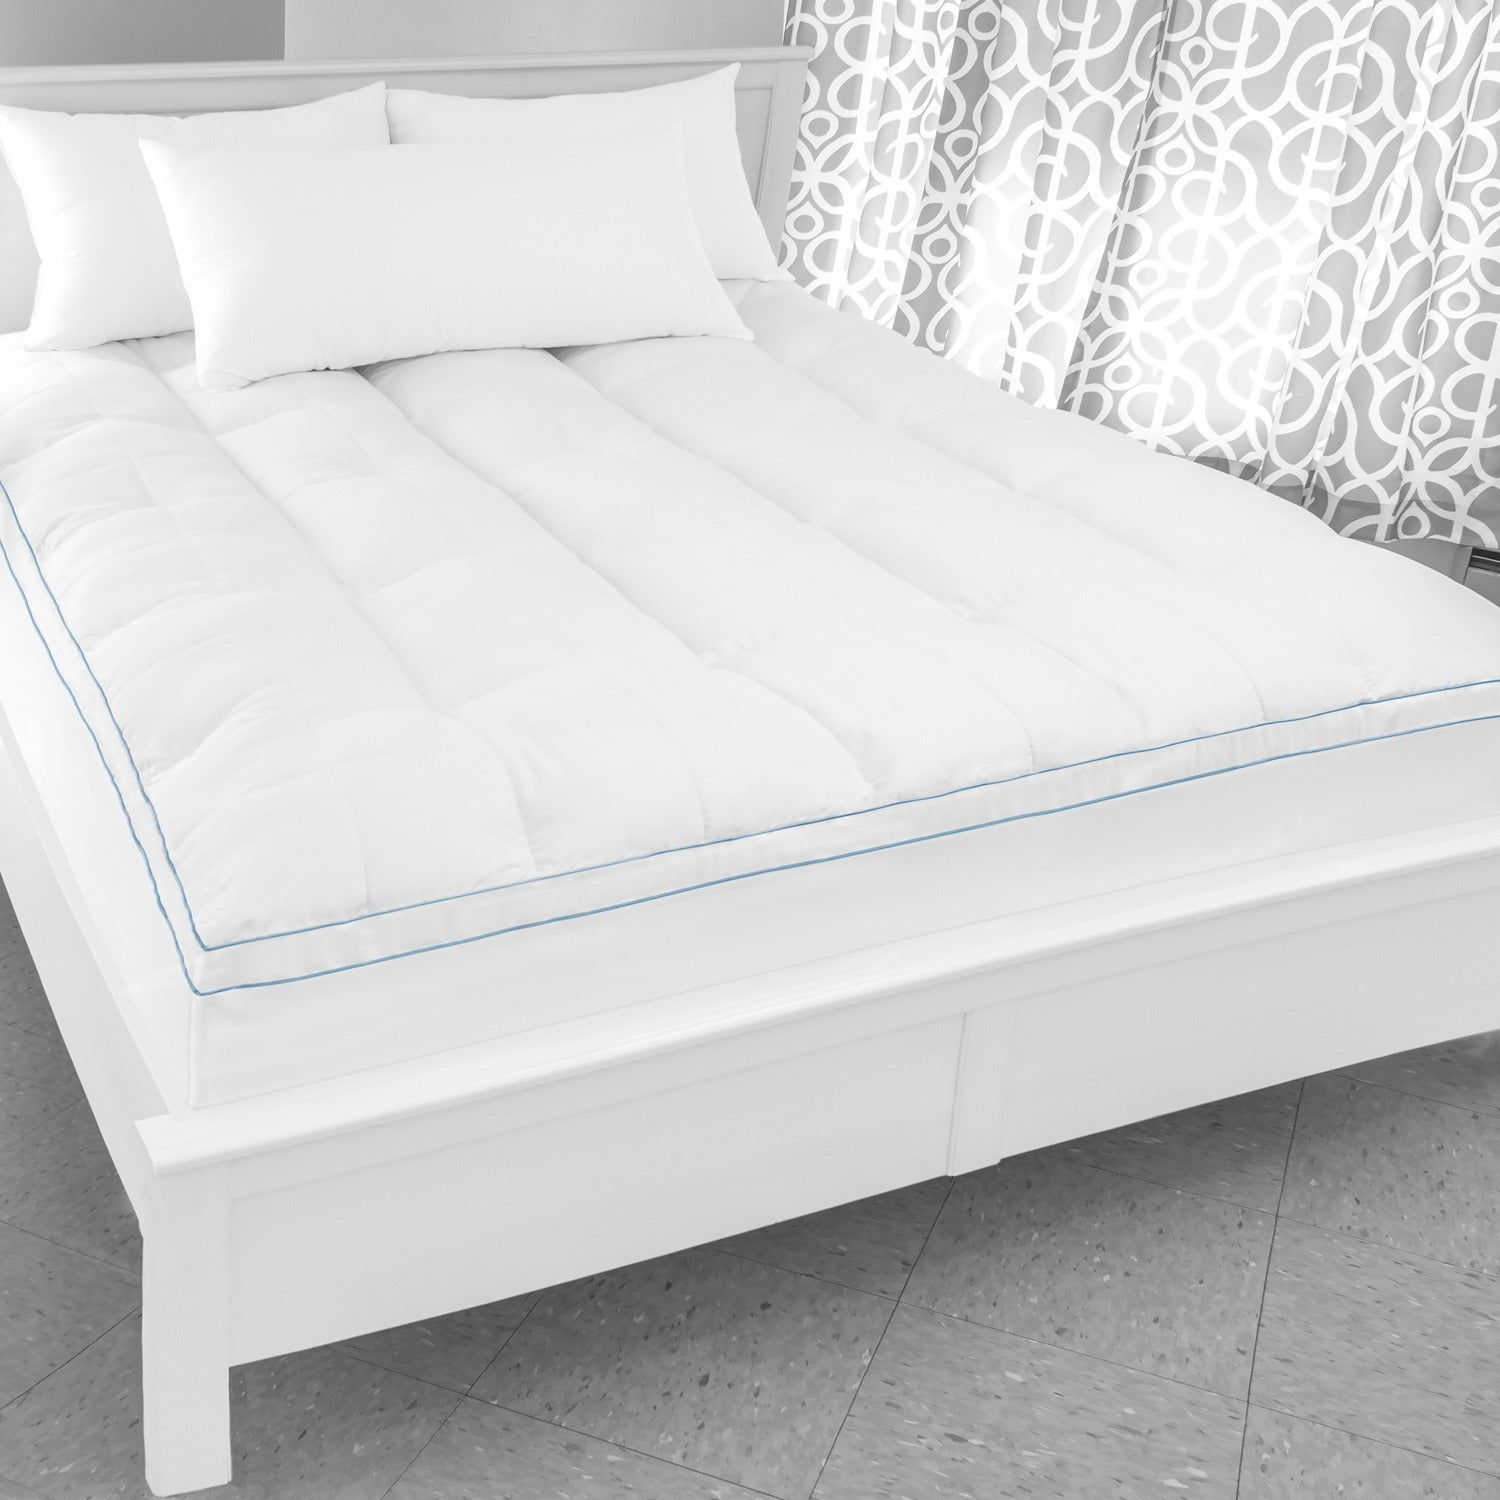 Topmatras Swiss Sense.Shop Swisslux Supreme Memory Foam And Fiber Bed Topper With Skirt